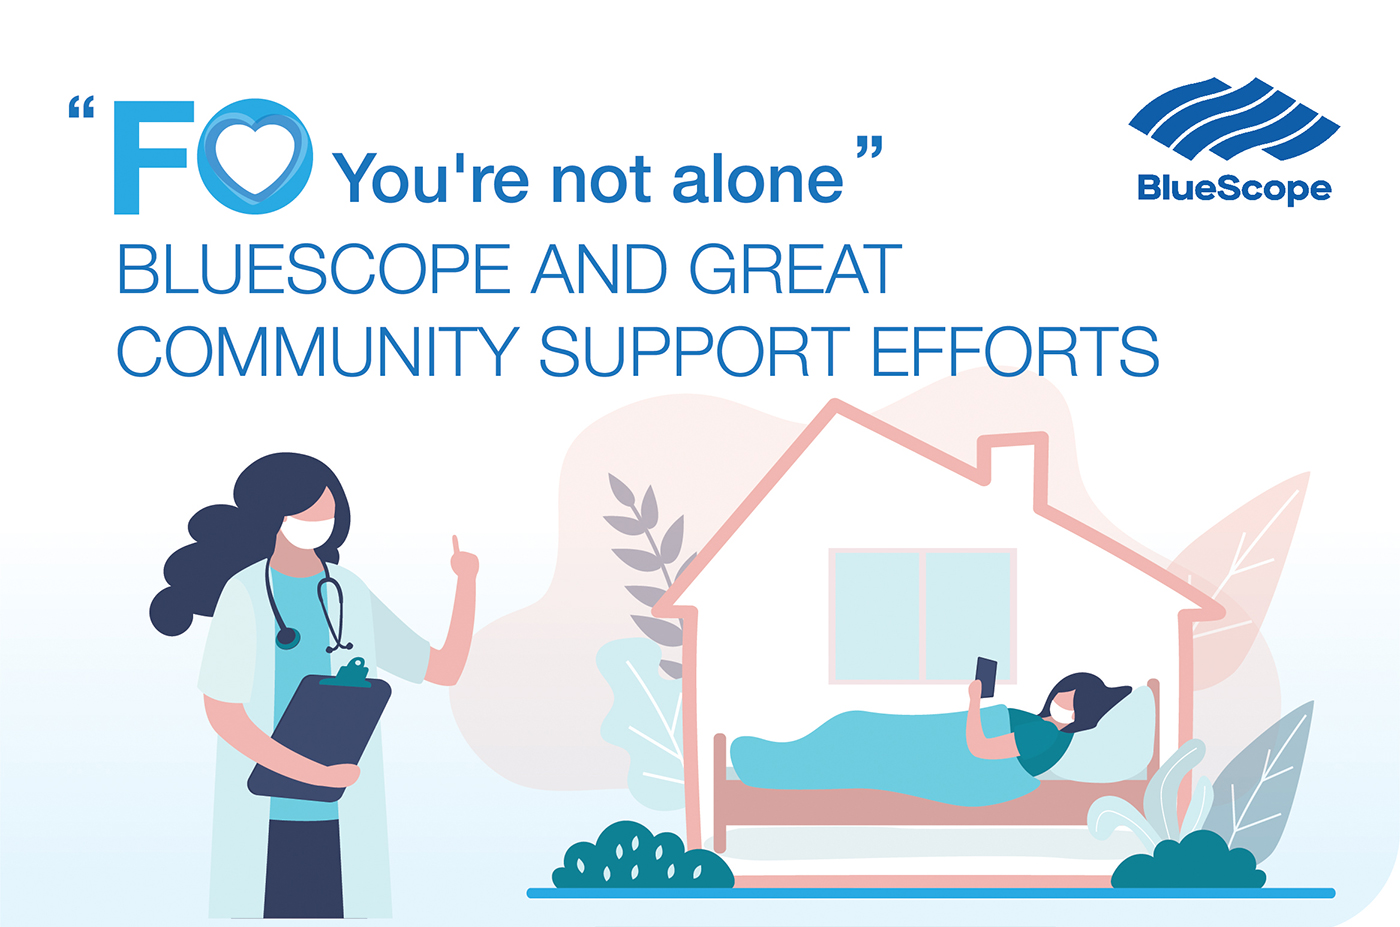 F0 YOU'RE NOT ALONE – BLUESCOPE AND GREAT COMMUNITY SUPPORT EFFORTS